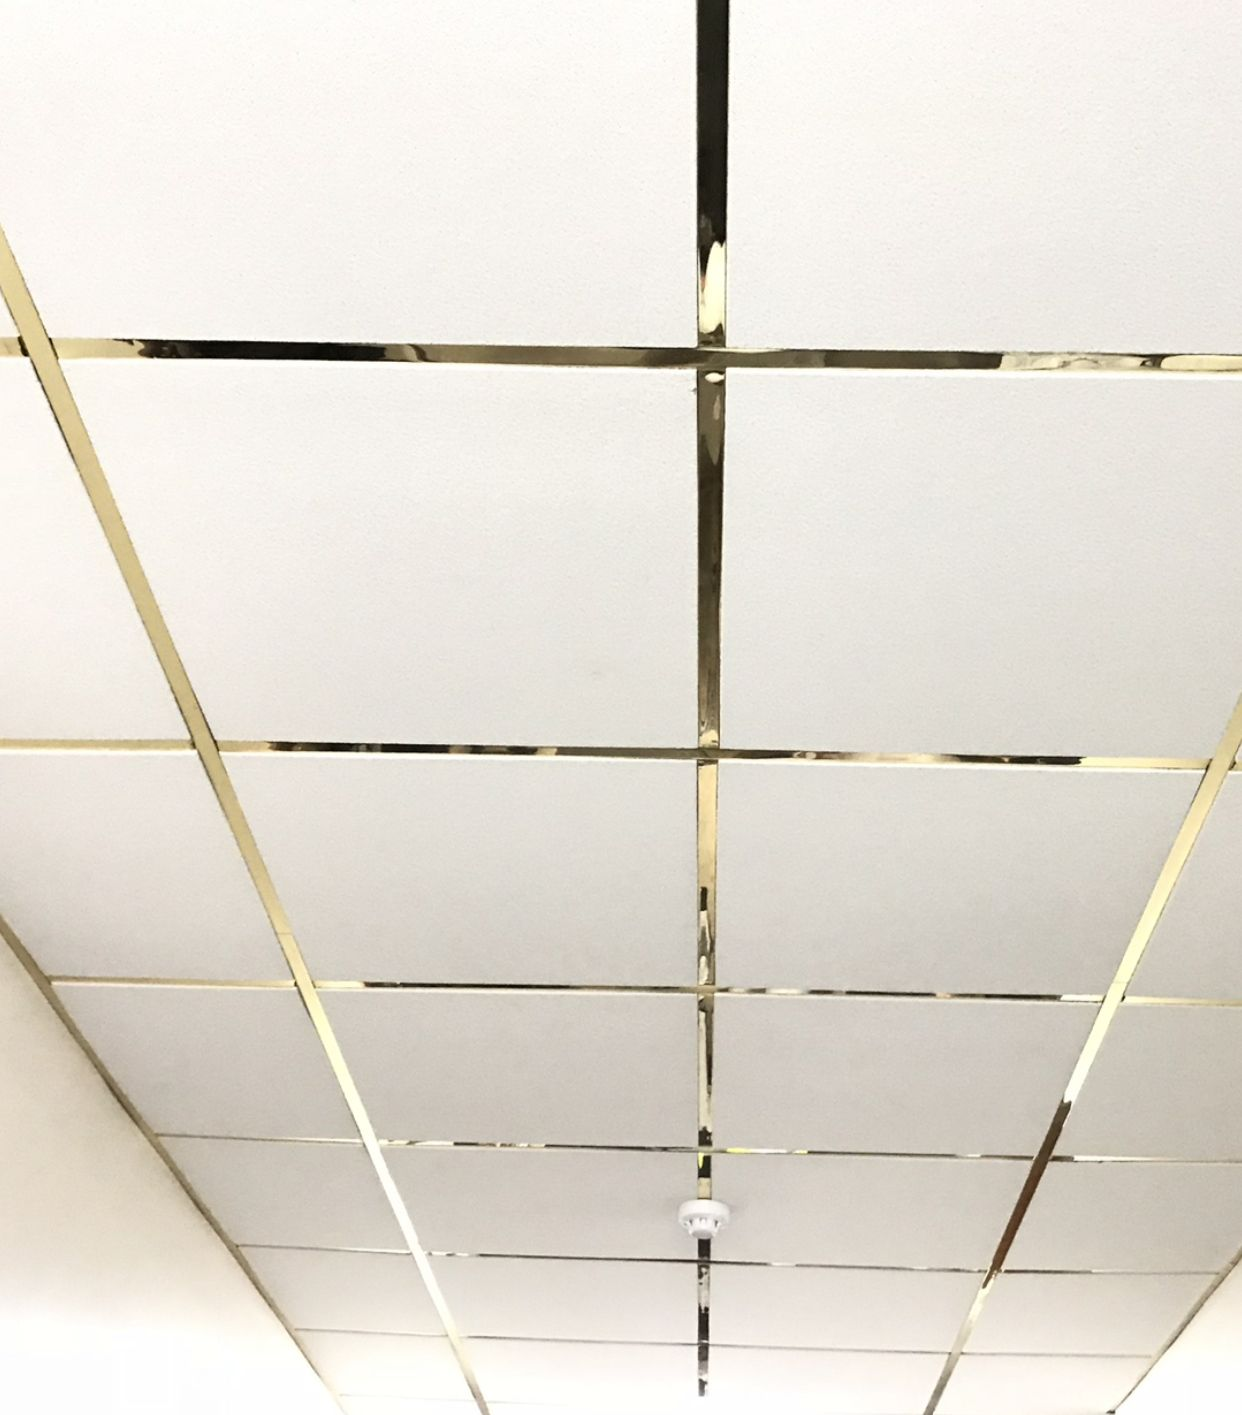 Suspended Ceiling Tiles And Grid System 600 X 600 Ceiling Grid Suspended Ceiling Tiles Suspended Ceiling